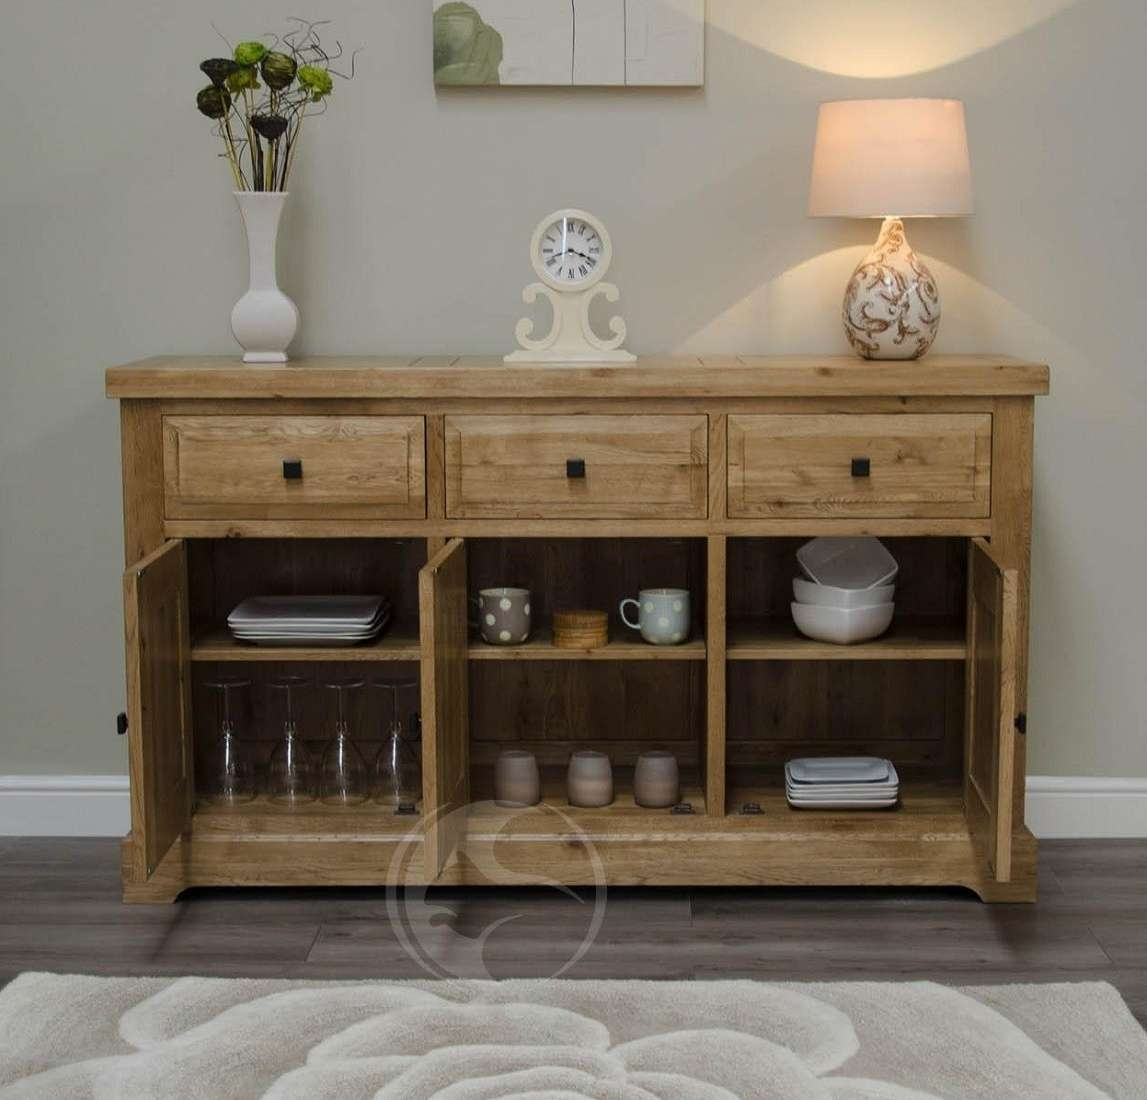 Coniston Rustic Solid Oak Large Sideboard | Oak Furniture Uk Inside Rustic Oak Large Sideboards (View 8 of 20)